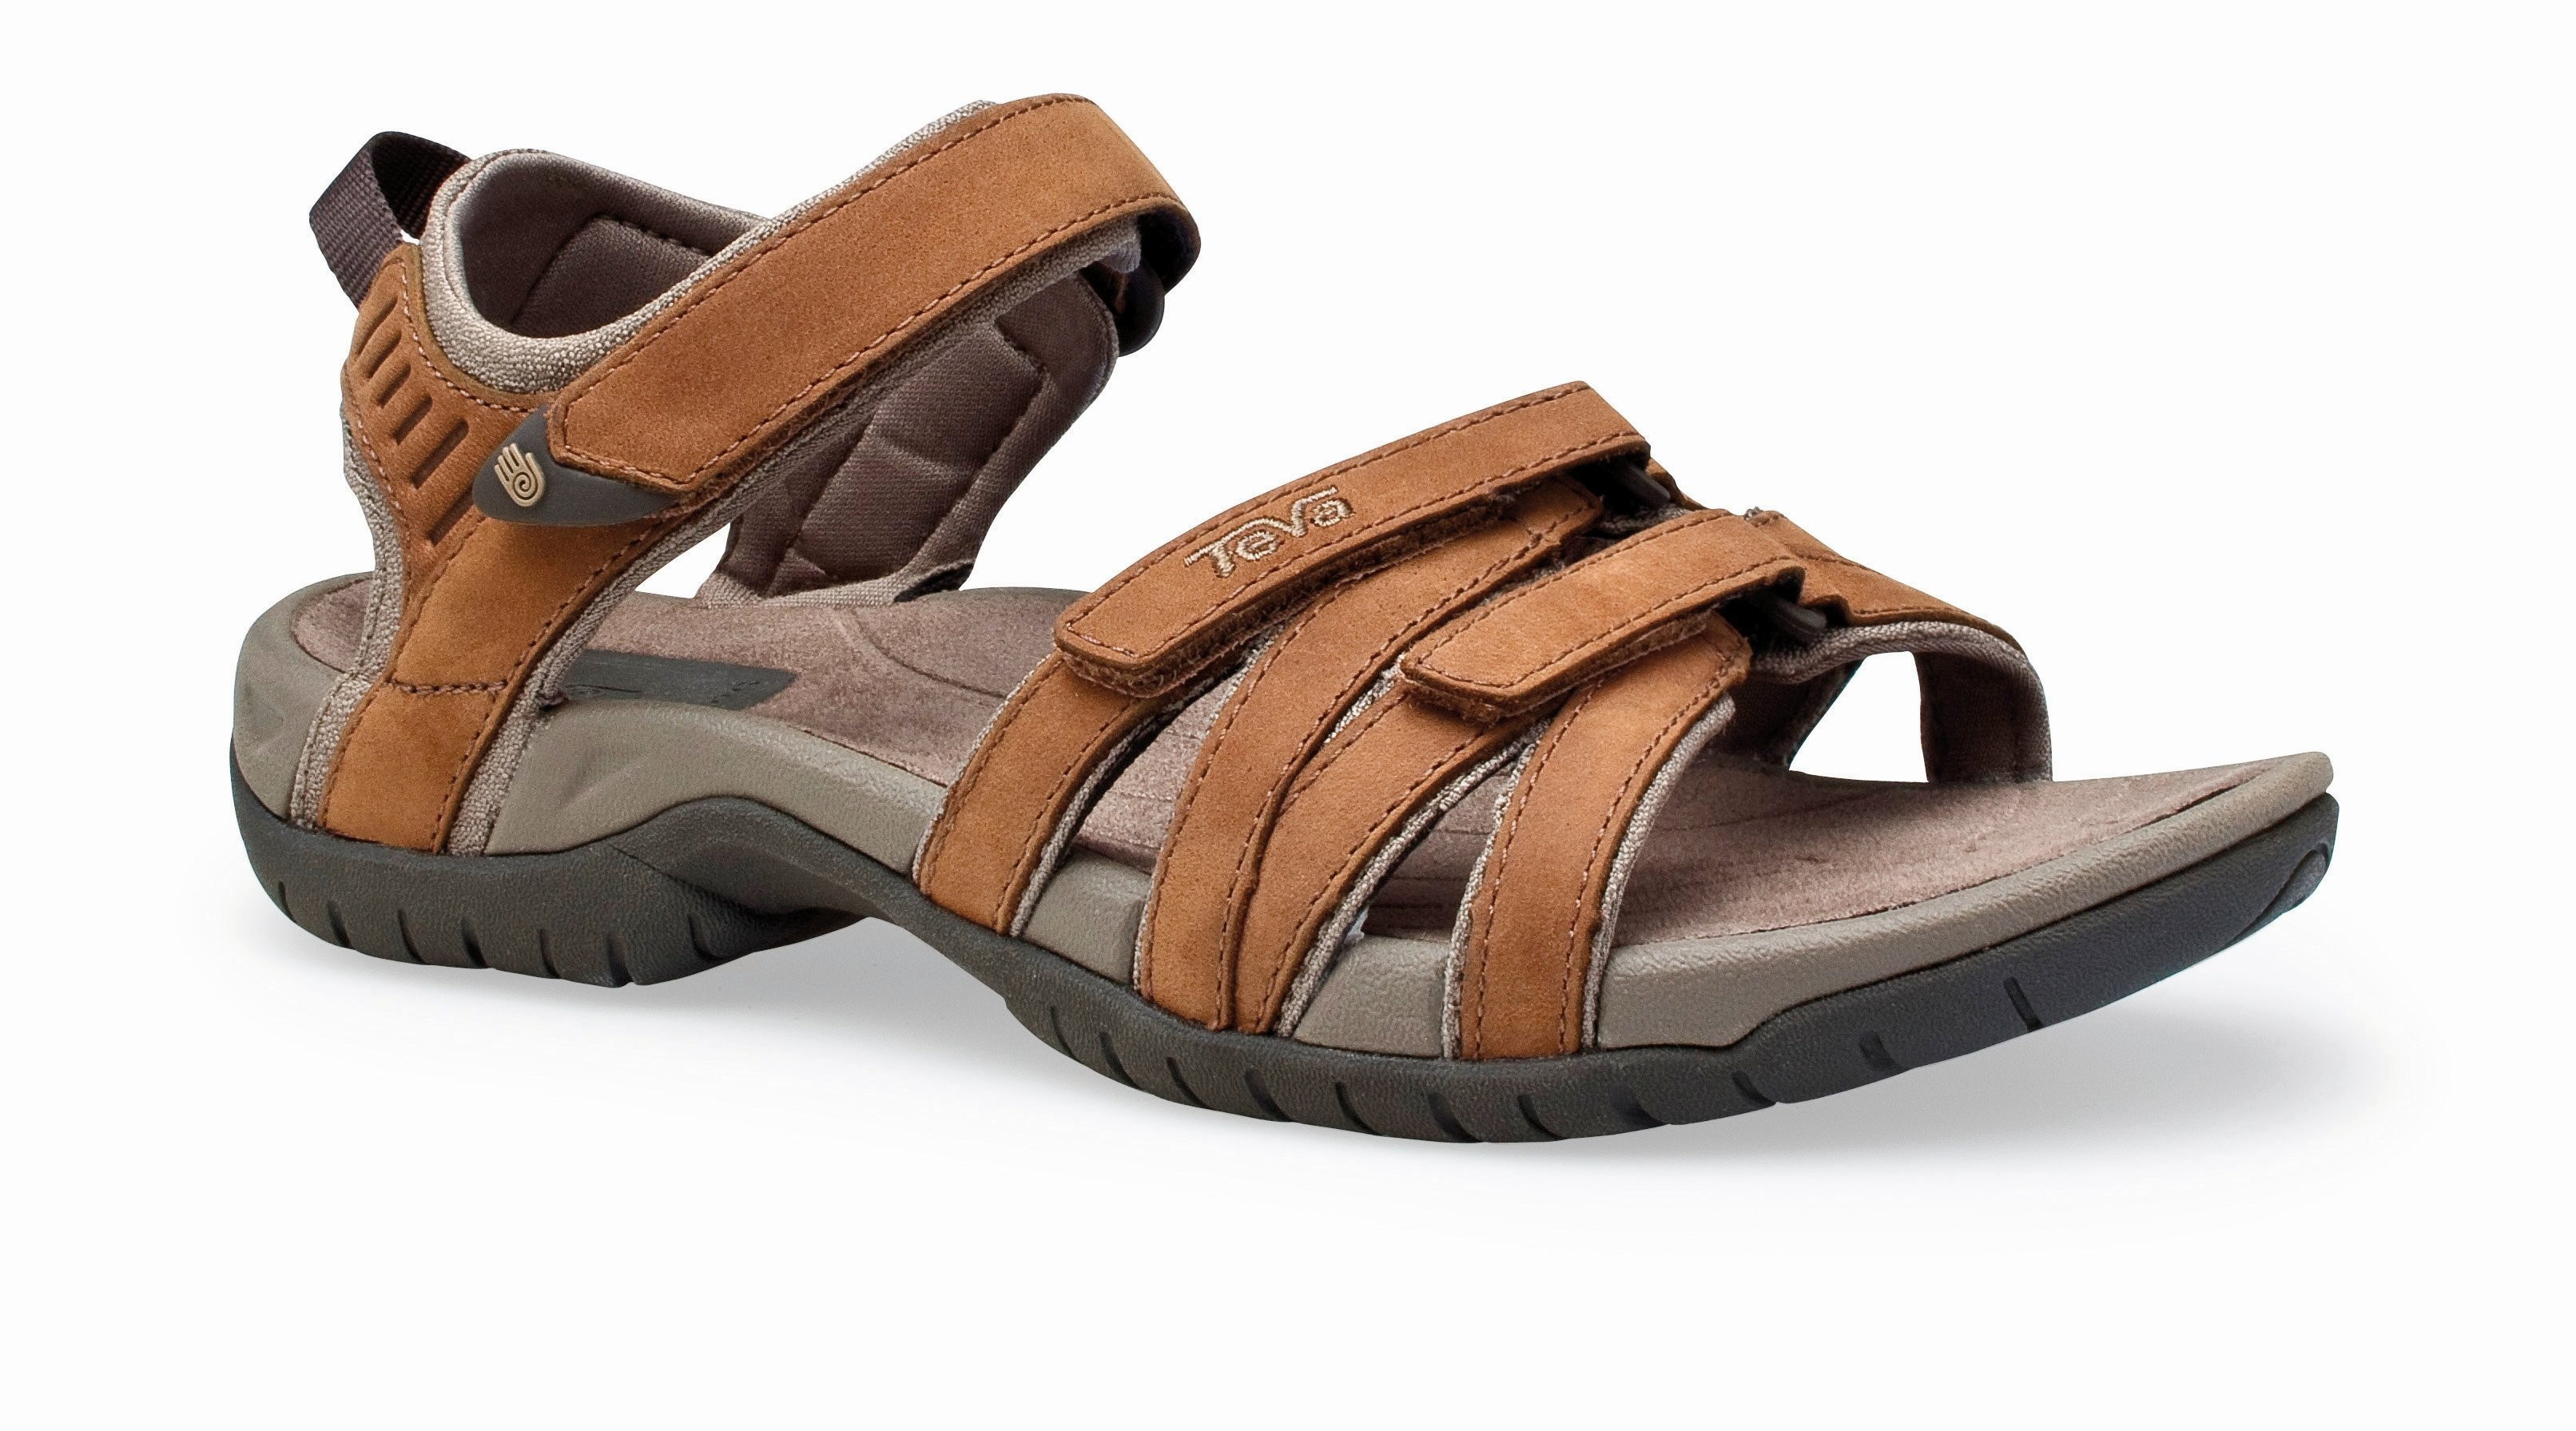 Teva Tirra Leather W's